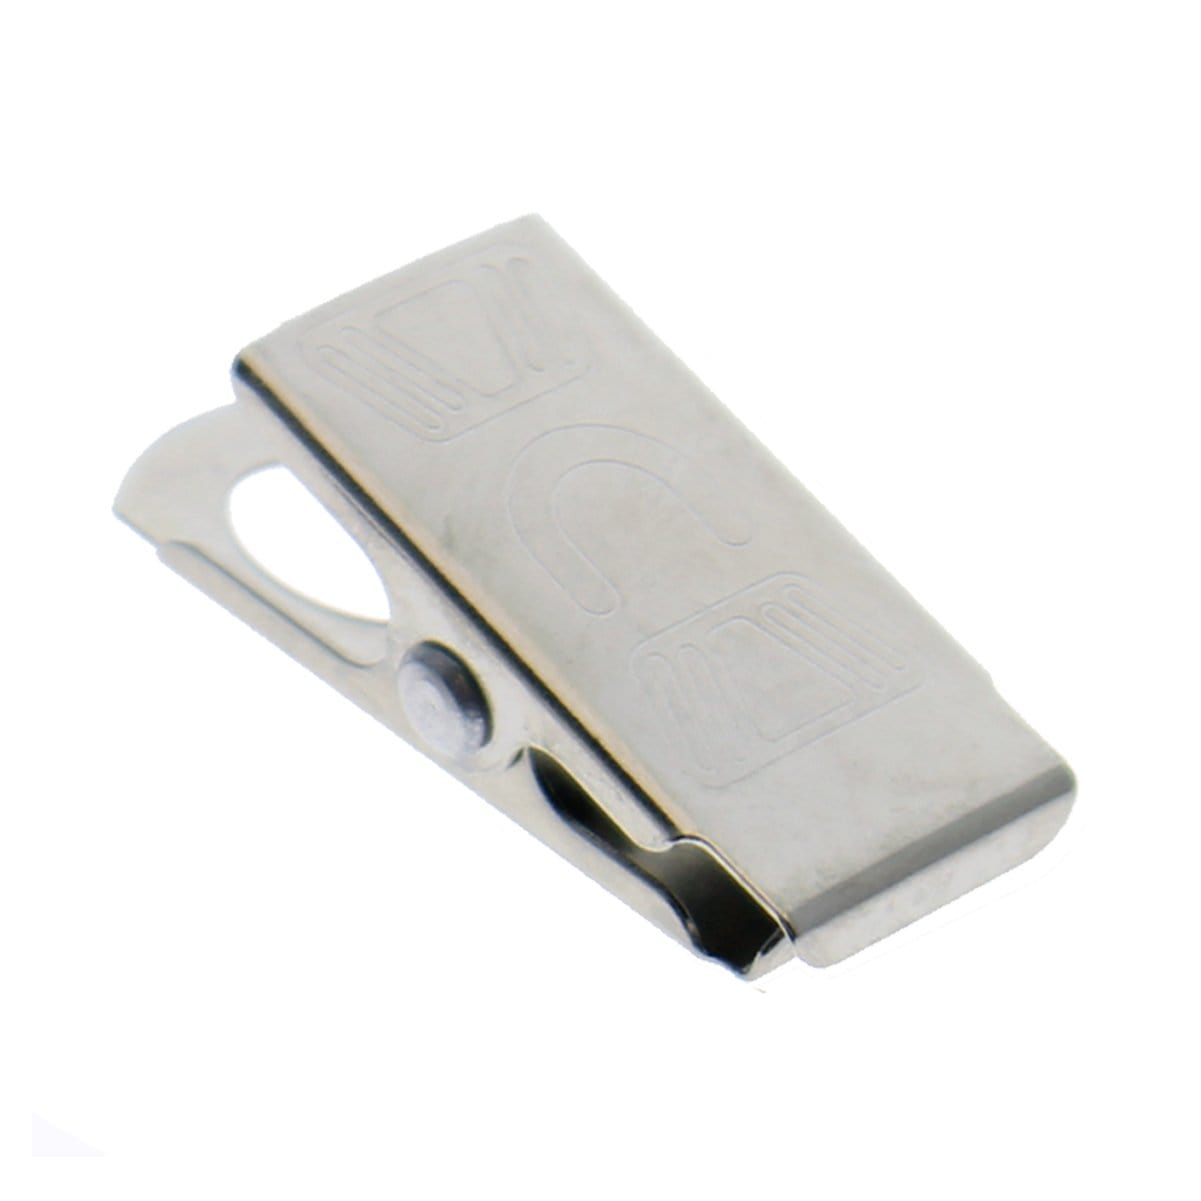 Bulldog Clips For Diy Lanyards And Arts And Crafts Alligator Style Metal Id Clip 5705 3542